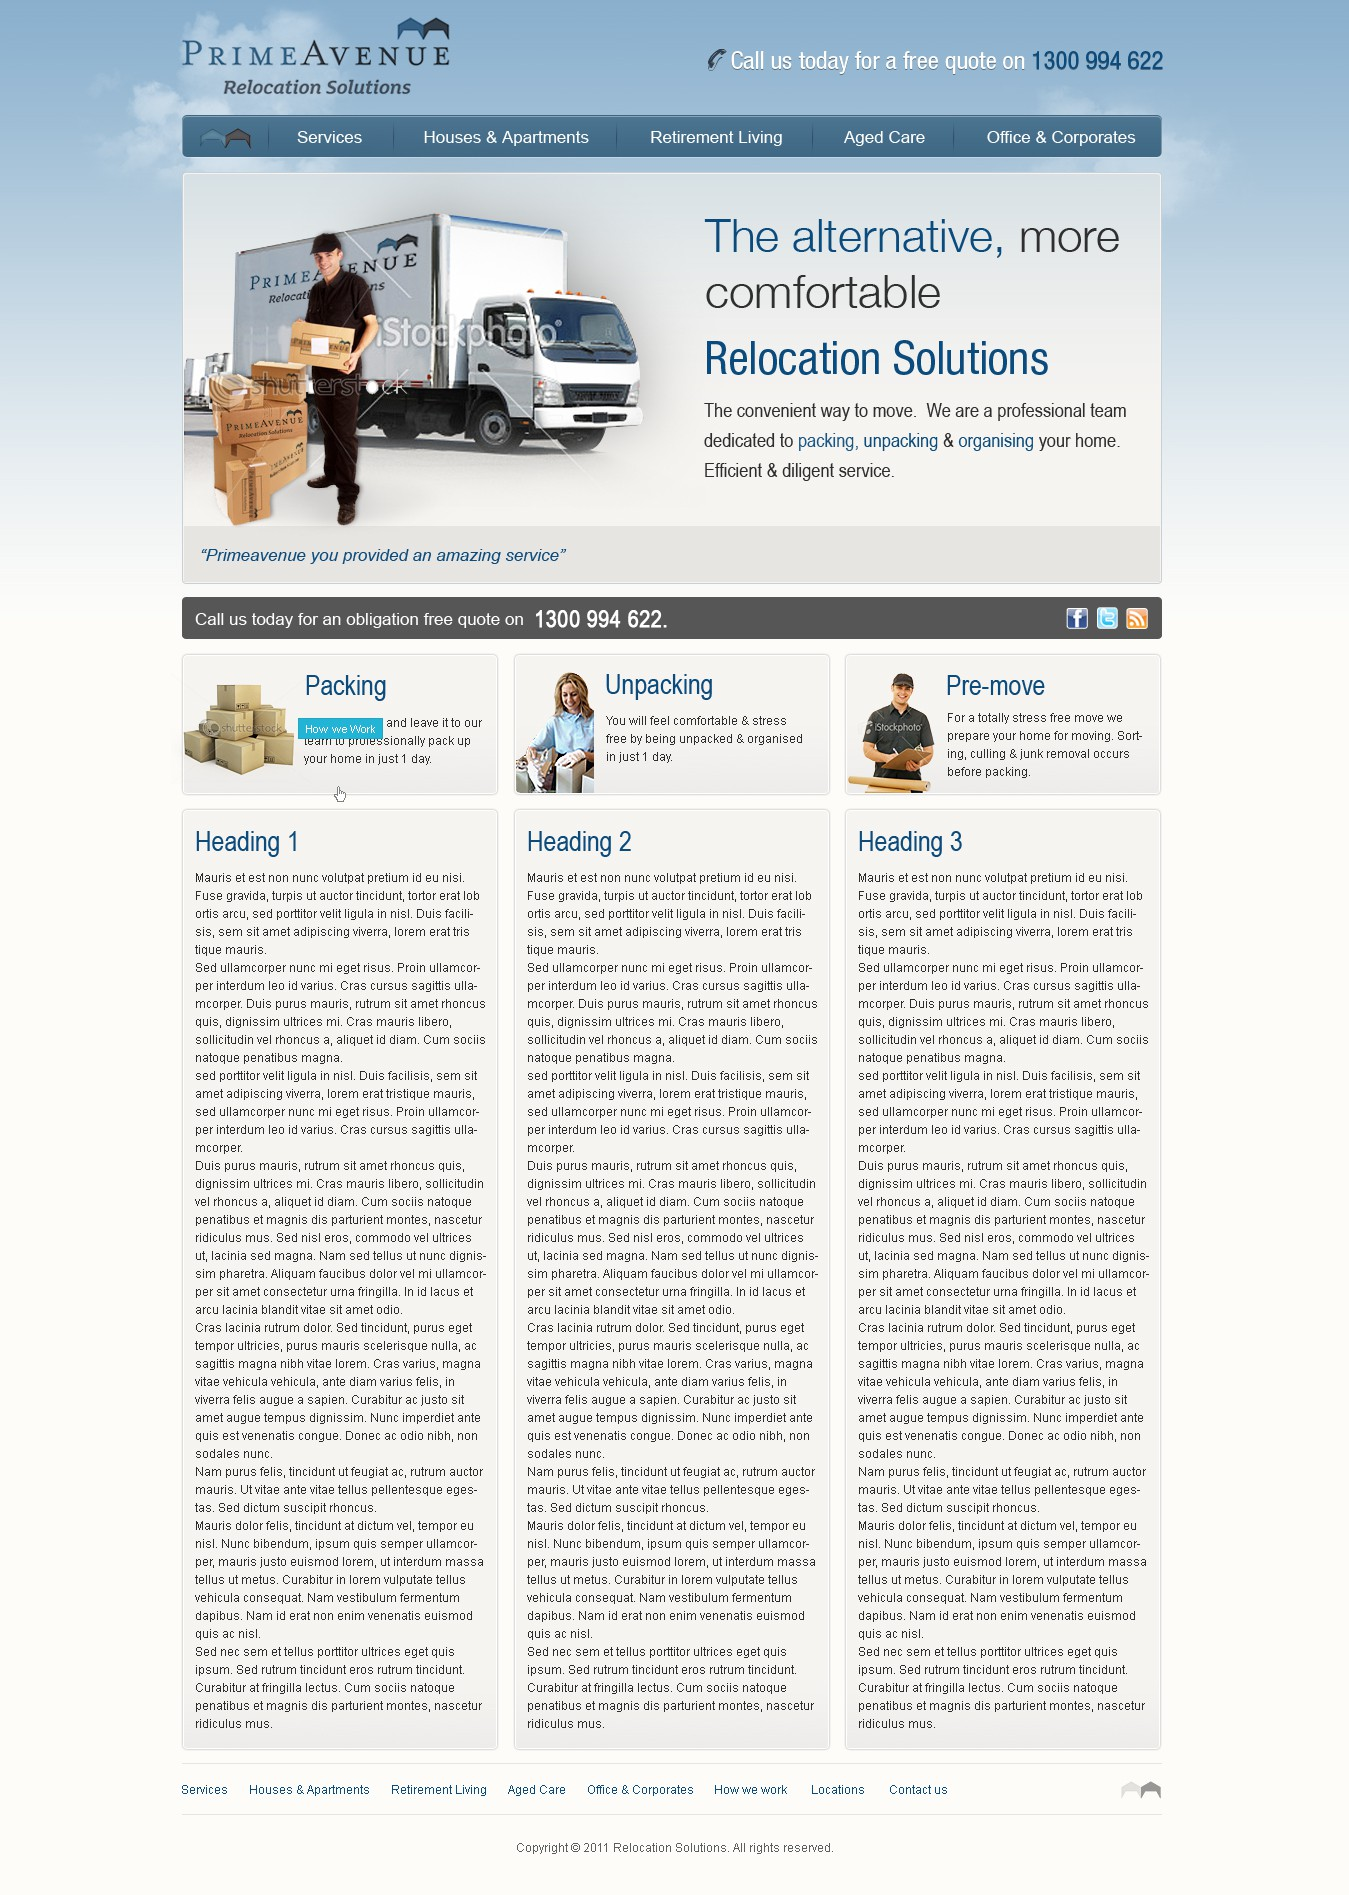 PrimeAvenue Relocation Solutions needs a new website design